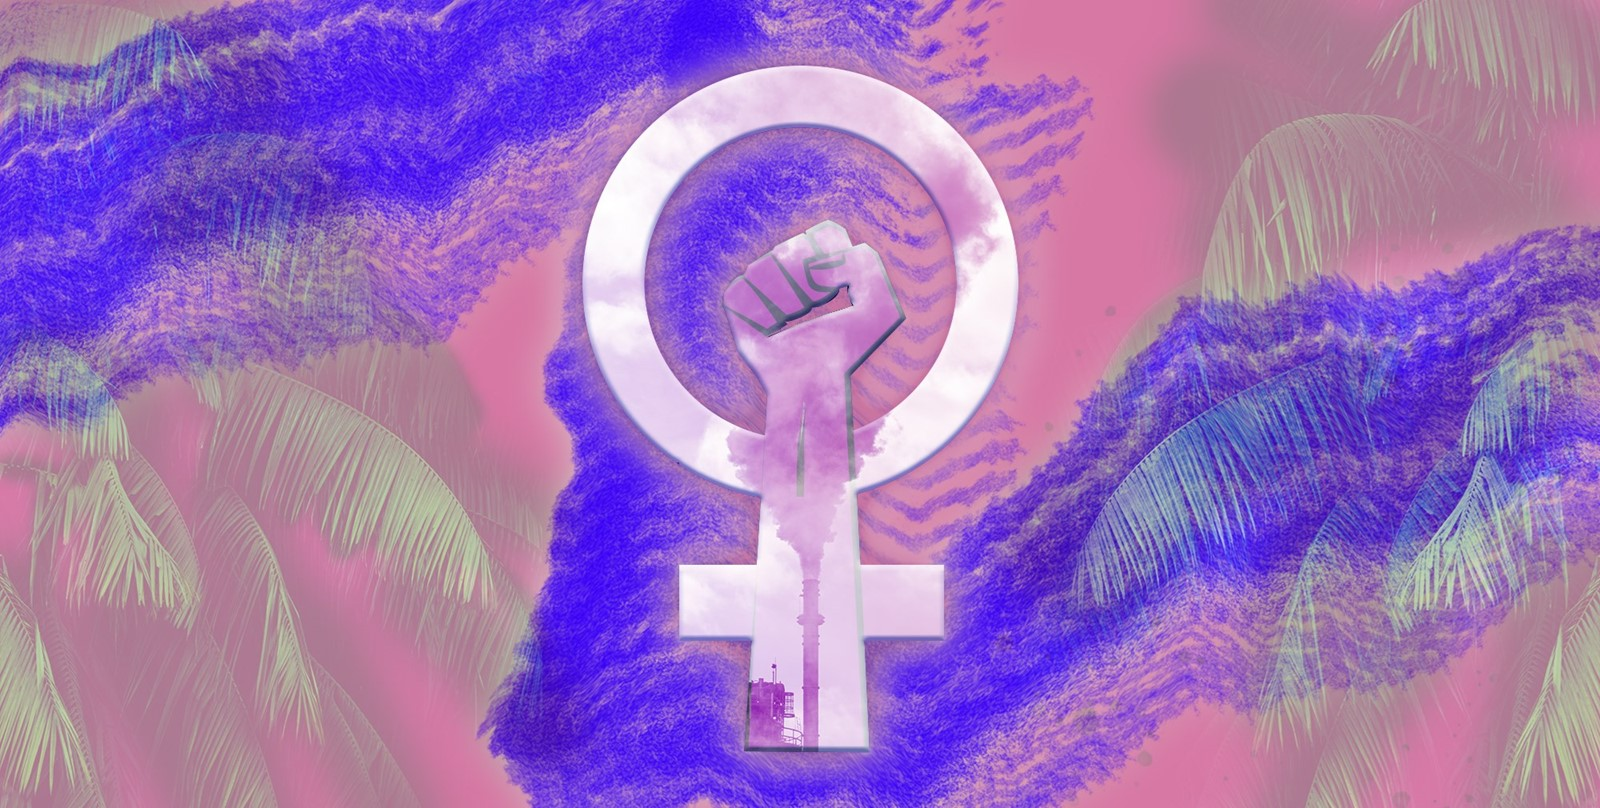 A Future World, climate change, sex and gender